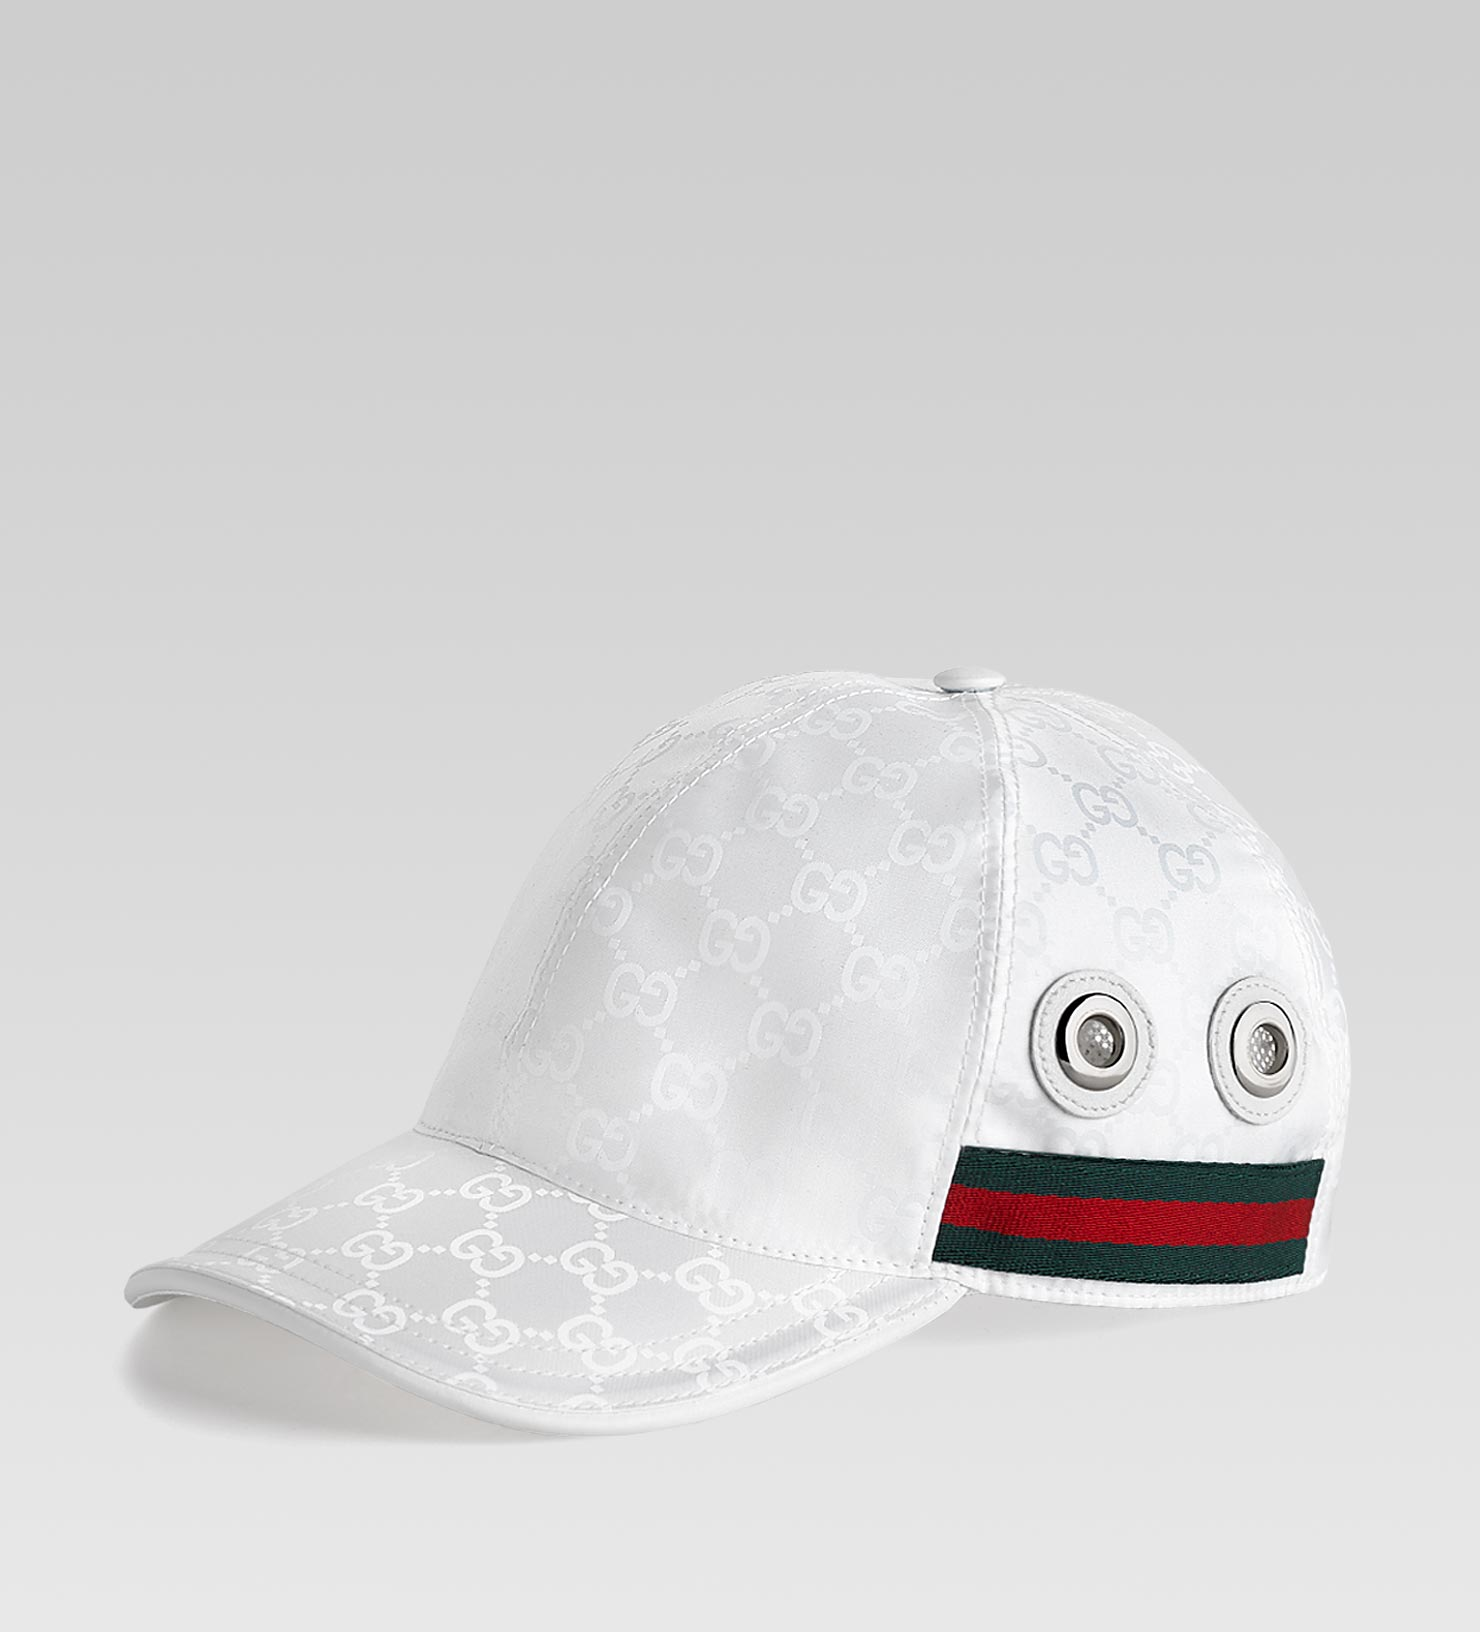 046f0bd93b2 Lyst - Gucci Baseball Hat with Grommets and Adjustable Hookandloop ...